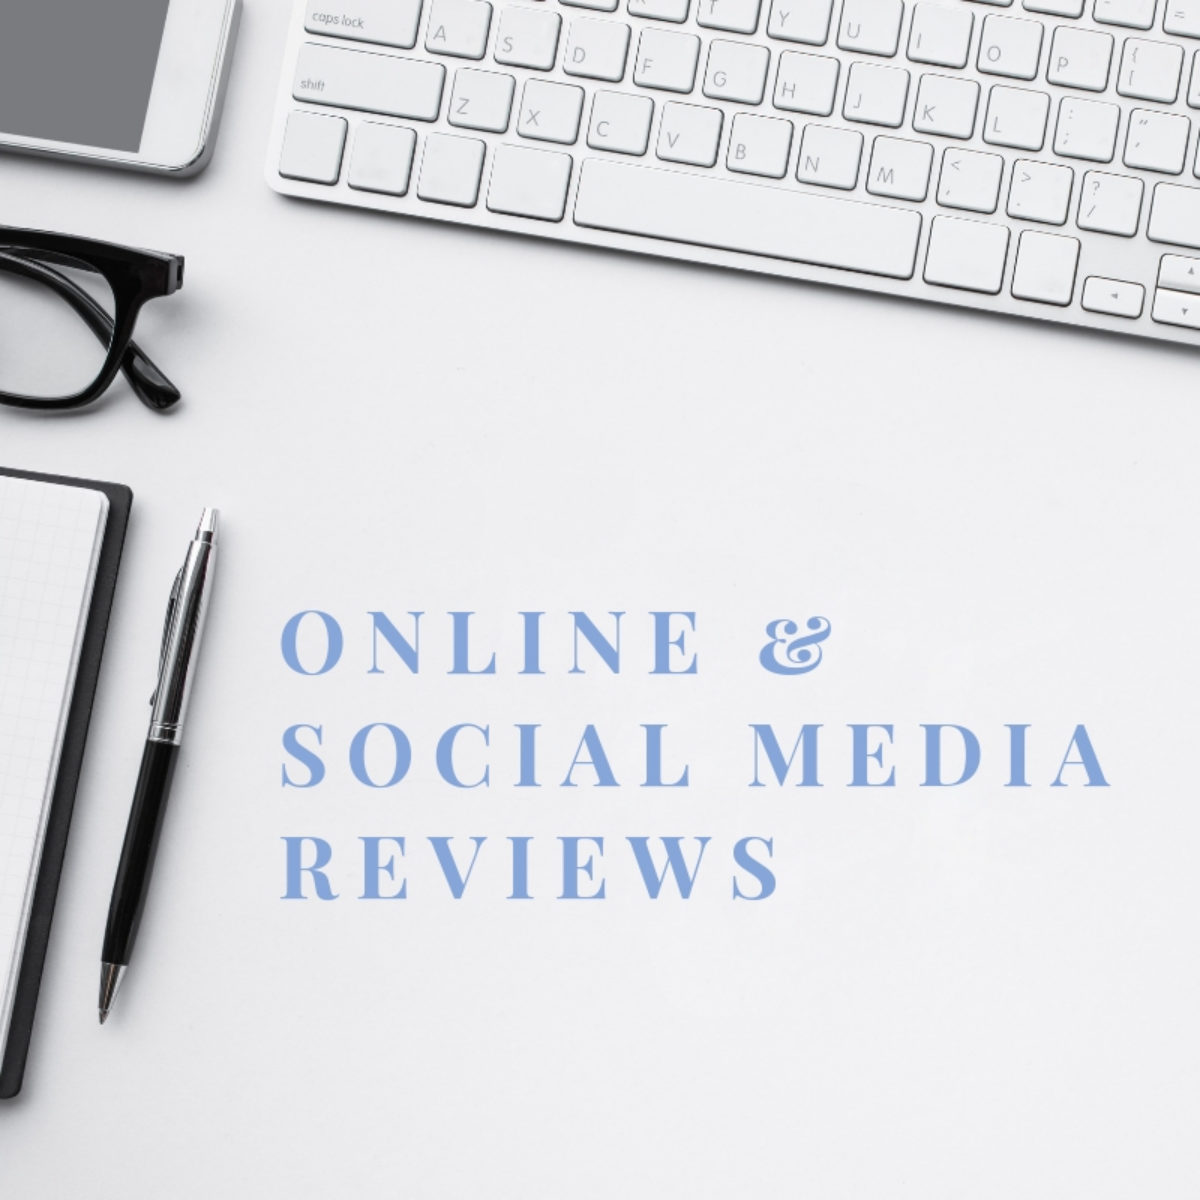 Online & social media reviews